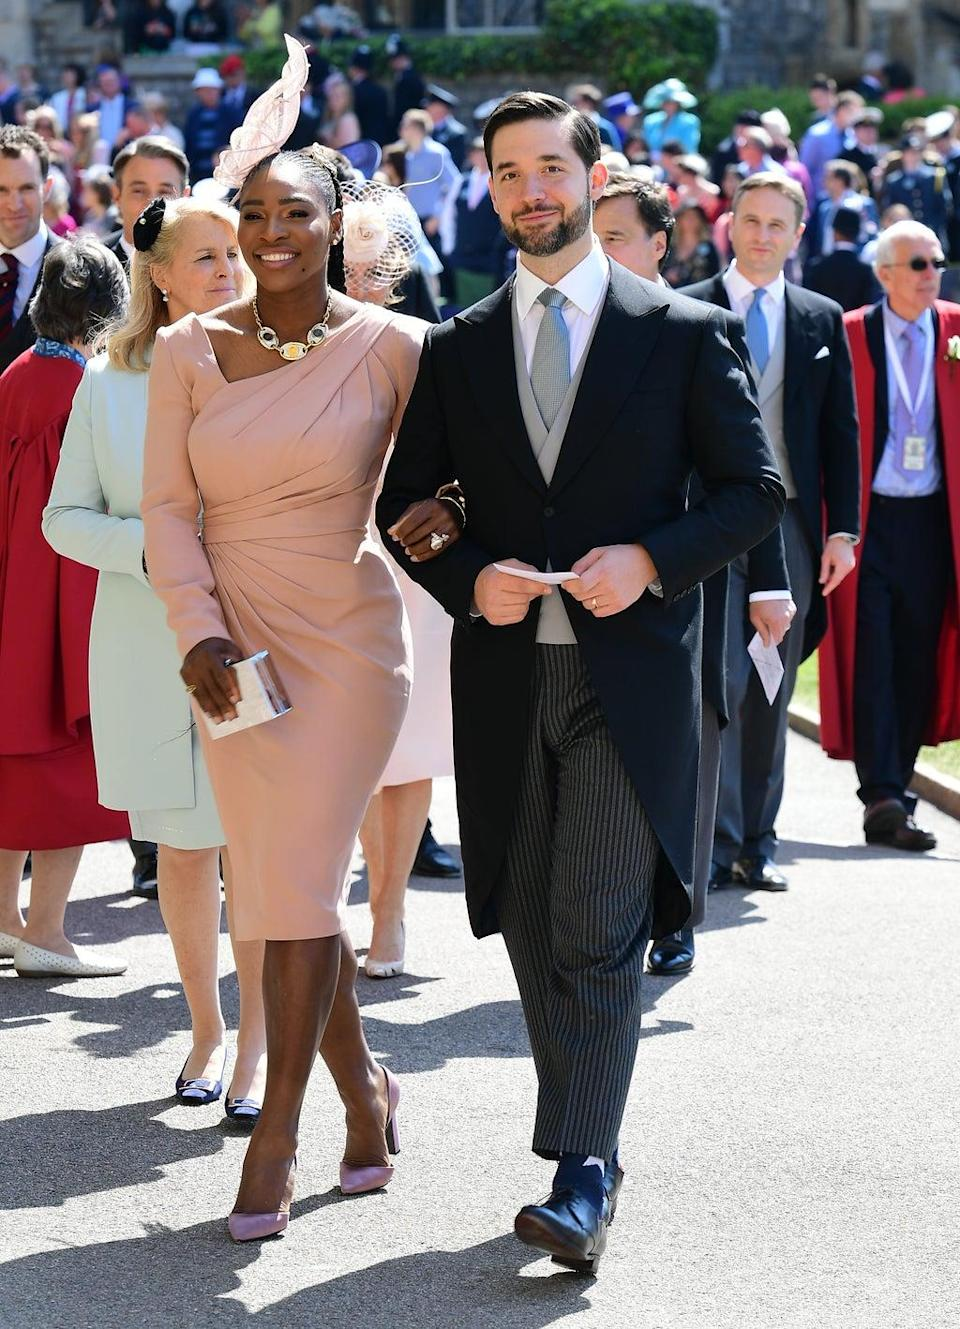 Serena Williams and her husband Alexis Ohanian arrive at St George's Chapel at Windsor Castle for the wedding of Meghan Markle and Prince Harry (Ian West/PA) (PA Archive)